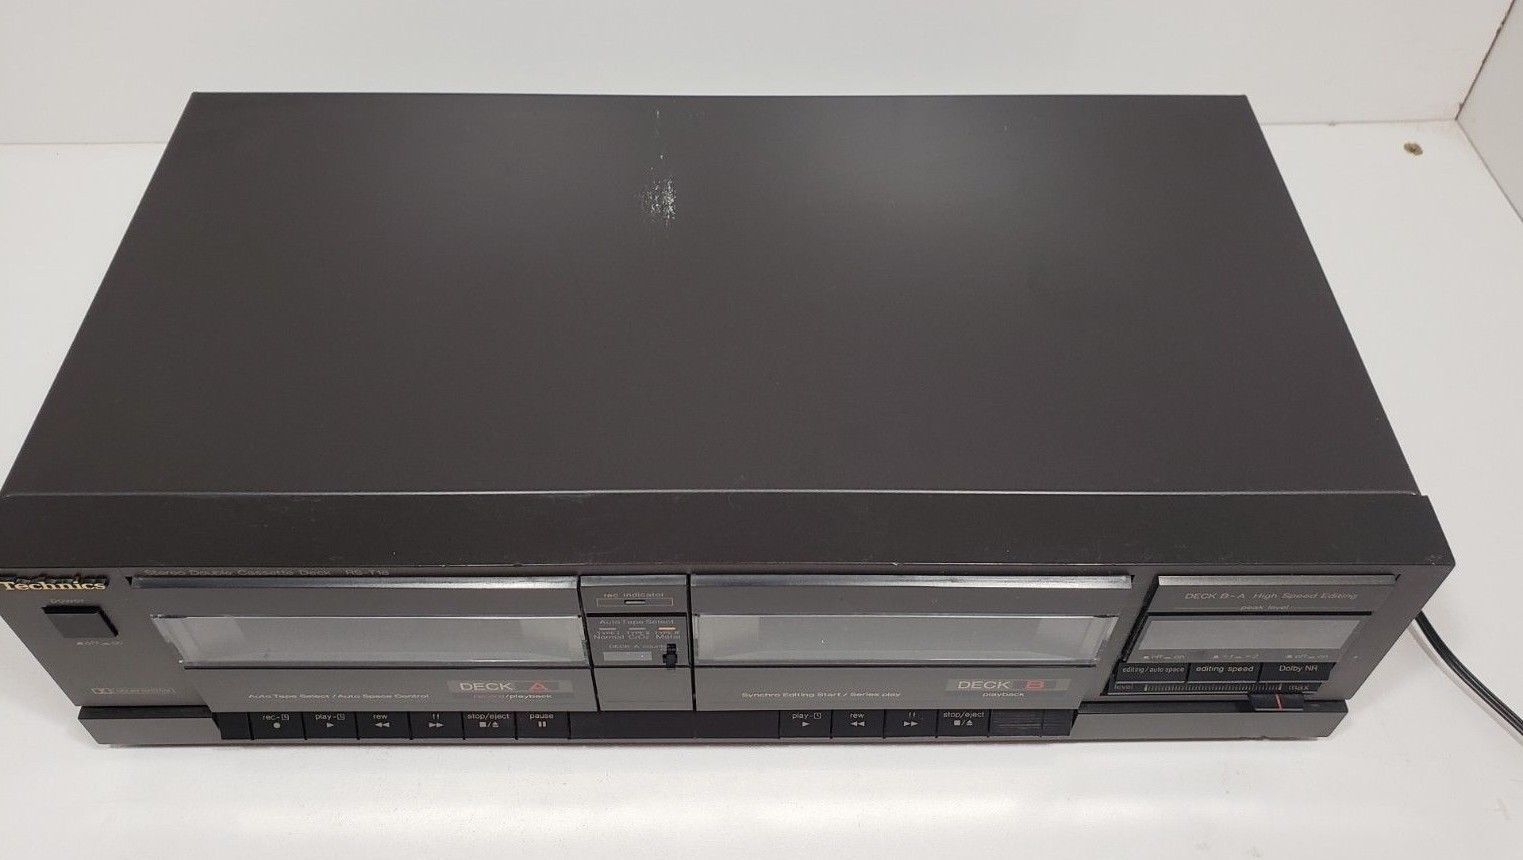 Technics Stereo Double Cassette Deck RS-T18...Tested image 5